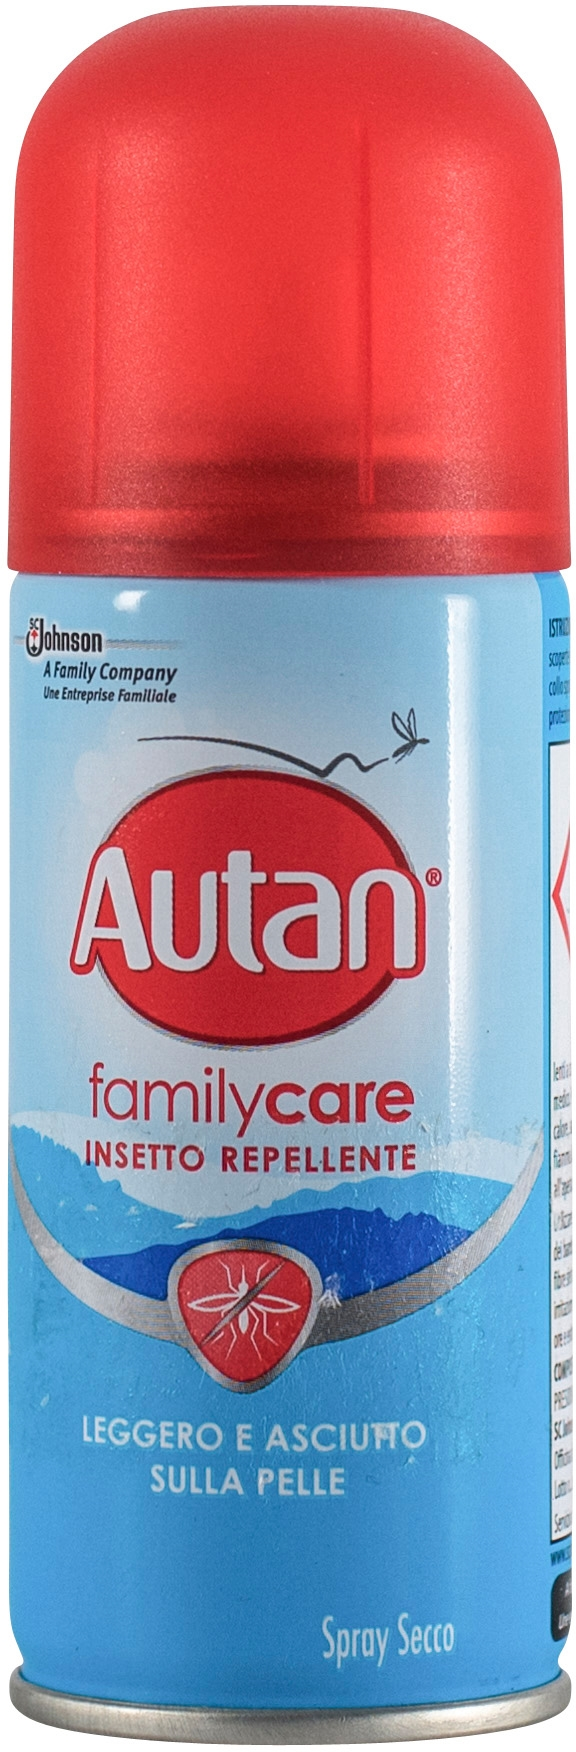 FAMILY CARE - INSETTO REPELLENTE - SPRAY SECCO